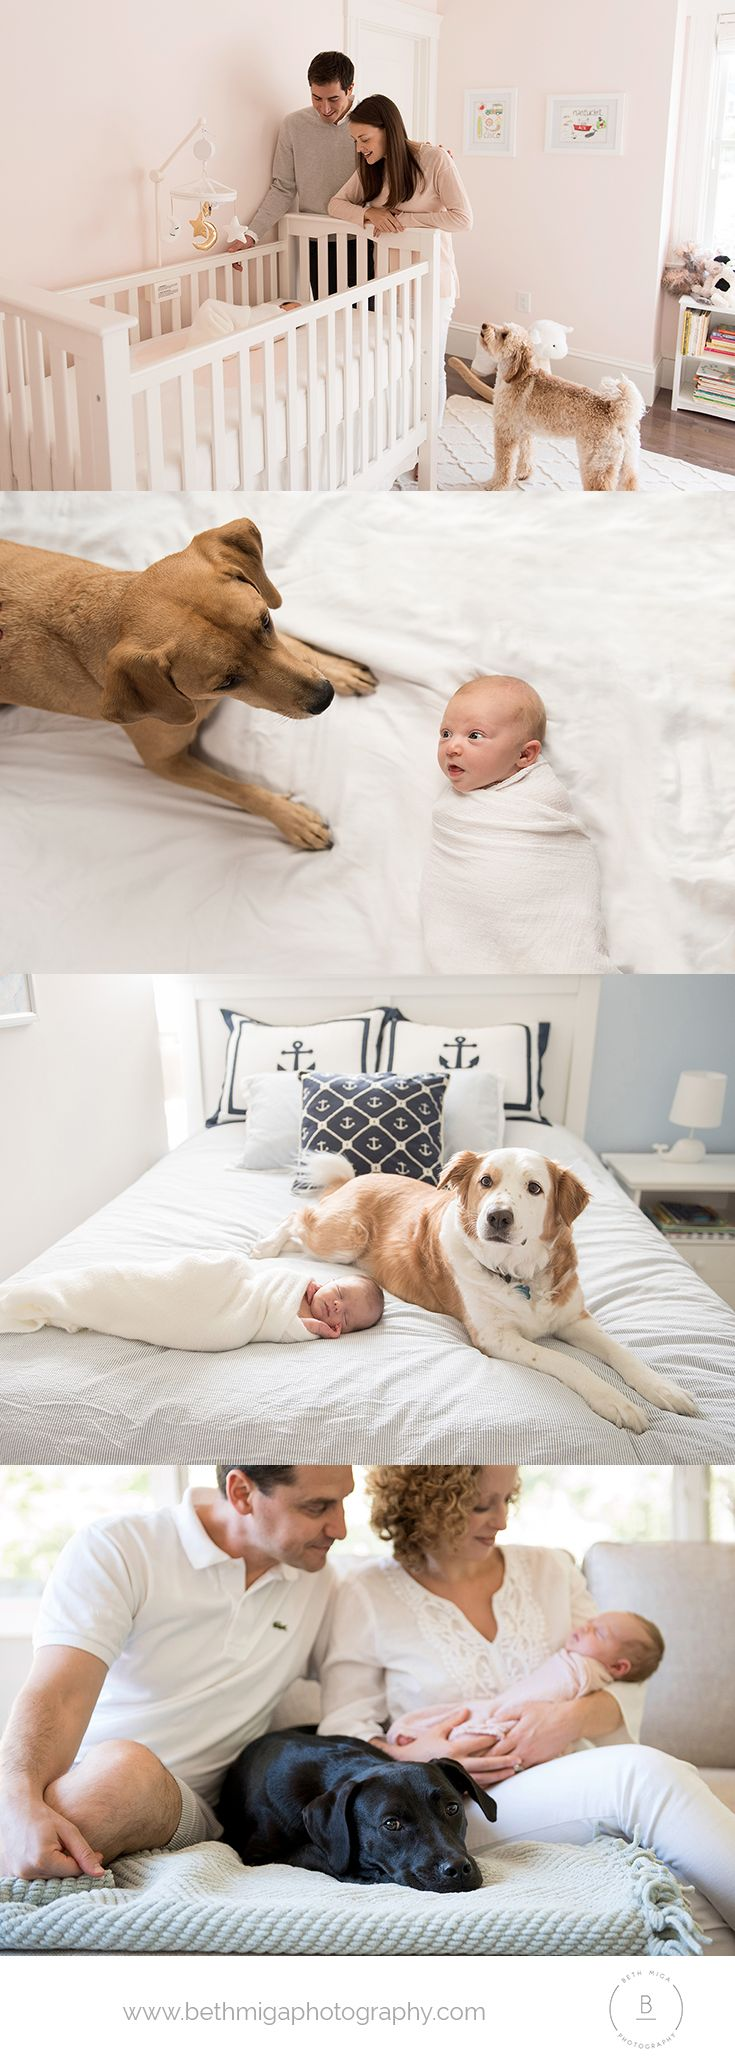 ideas for photos of newborn baby with dog | boston newborn photographer | puppy love | baby and puppy photo ideas